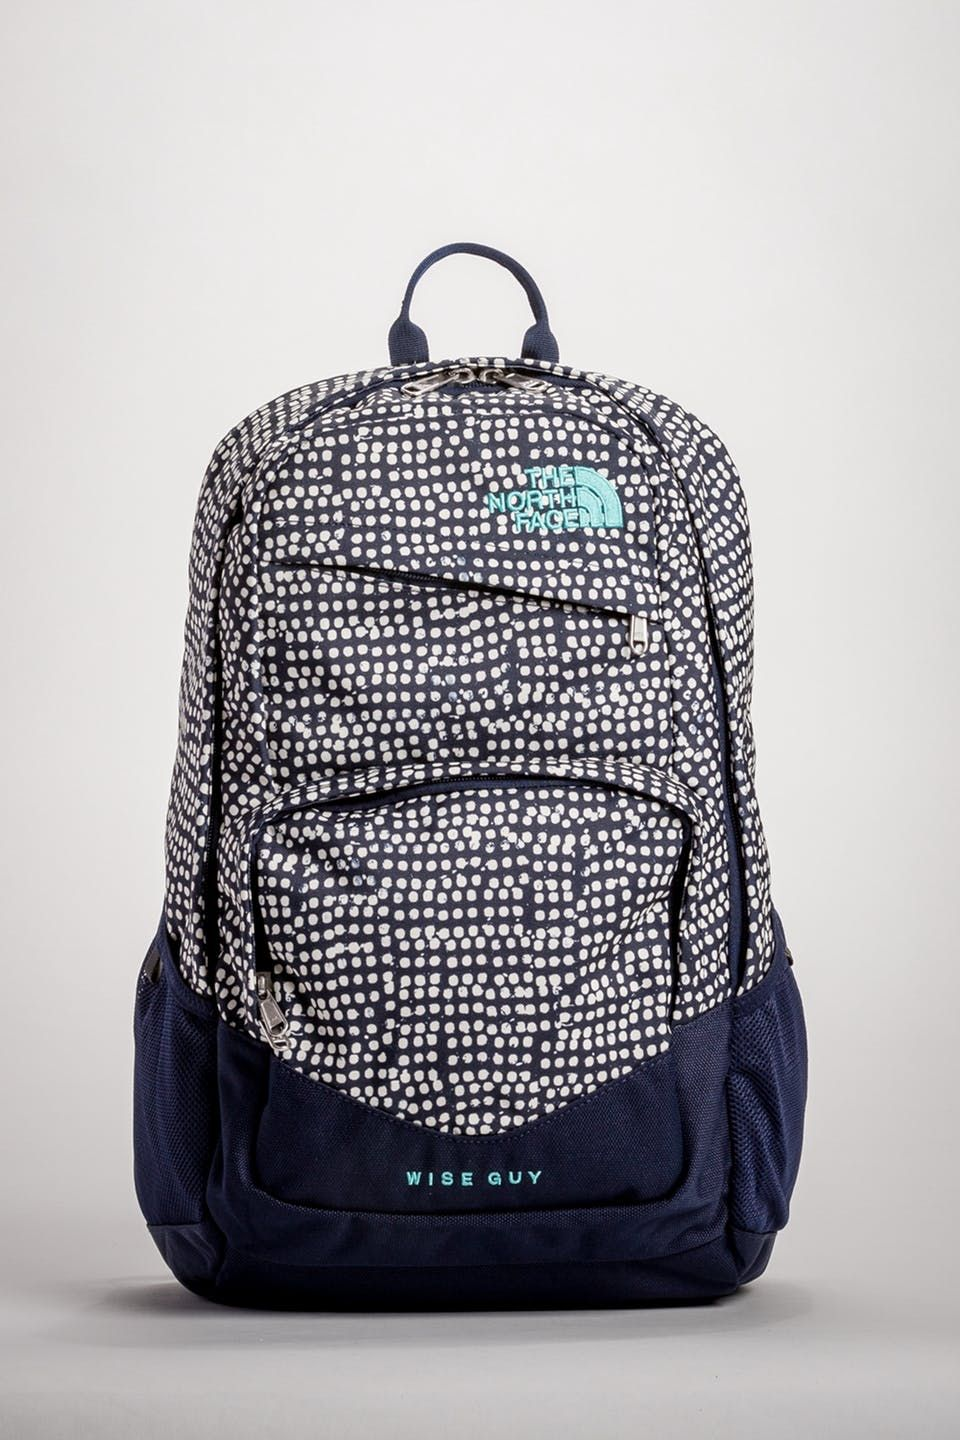 daa256fcc The North Face Wise Guy Backpack in 2019 | ANNA'S WISHLIST ...